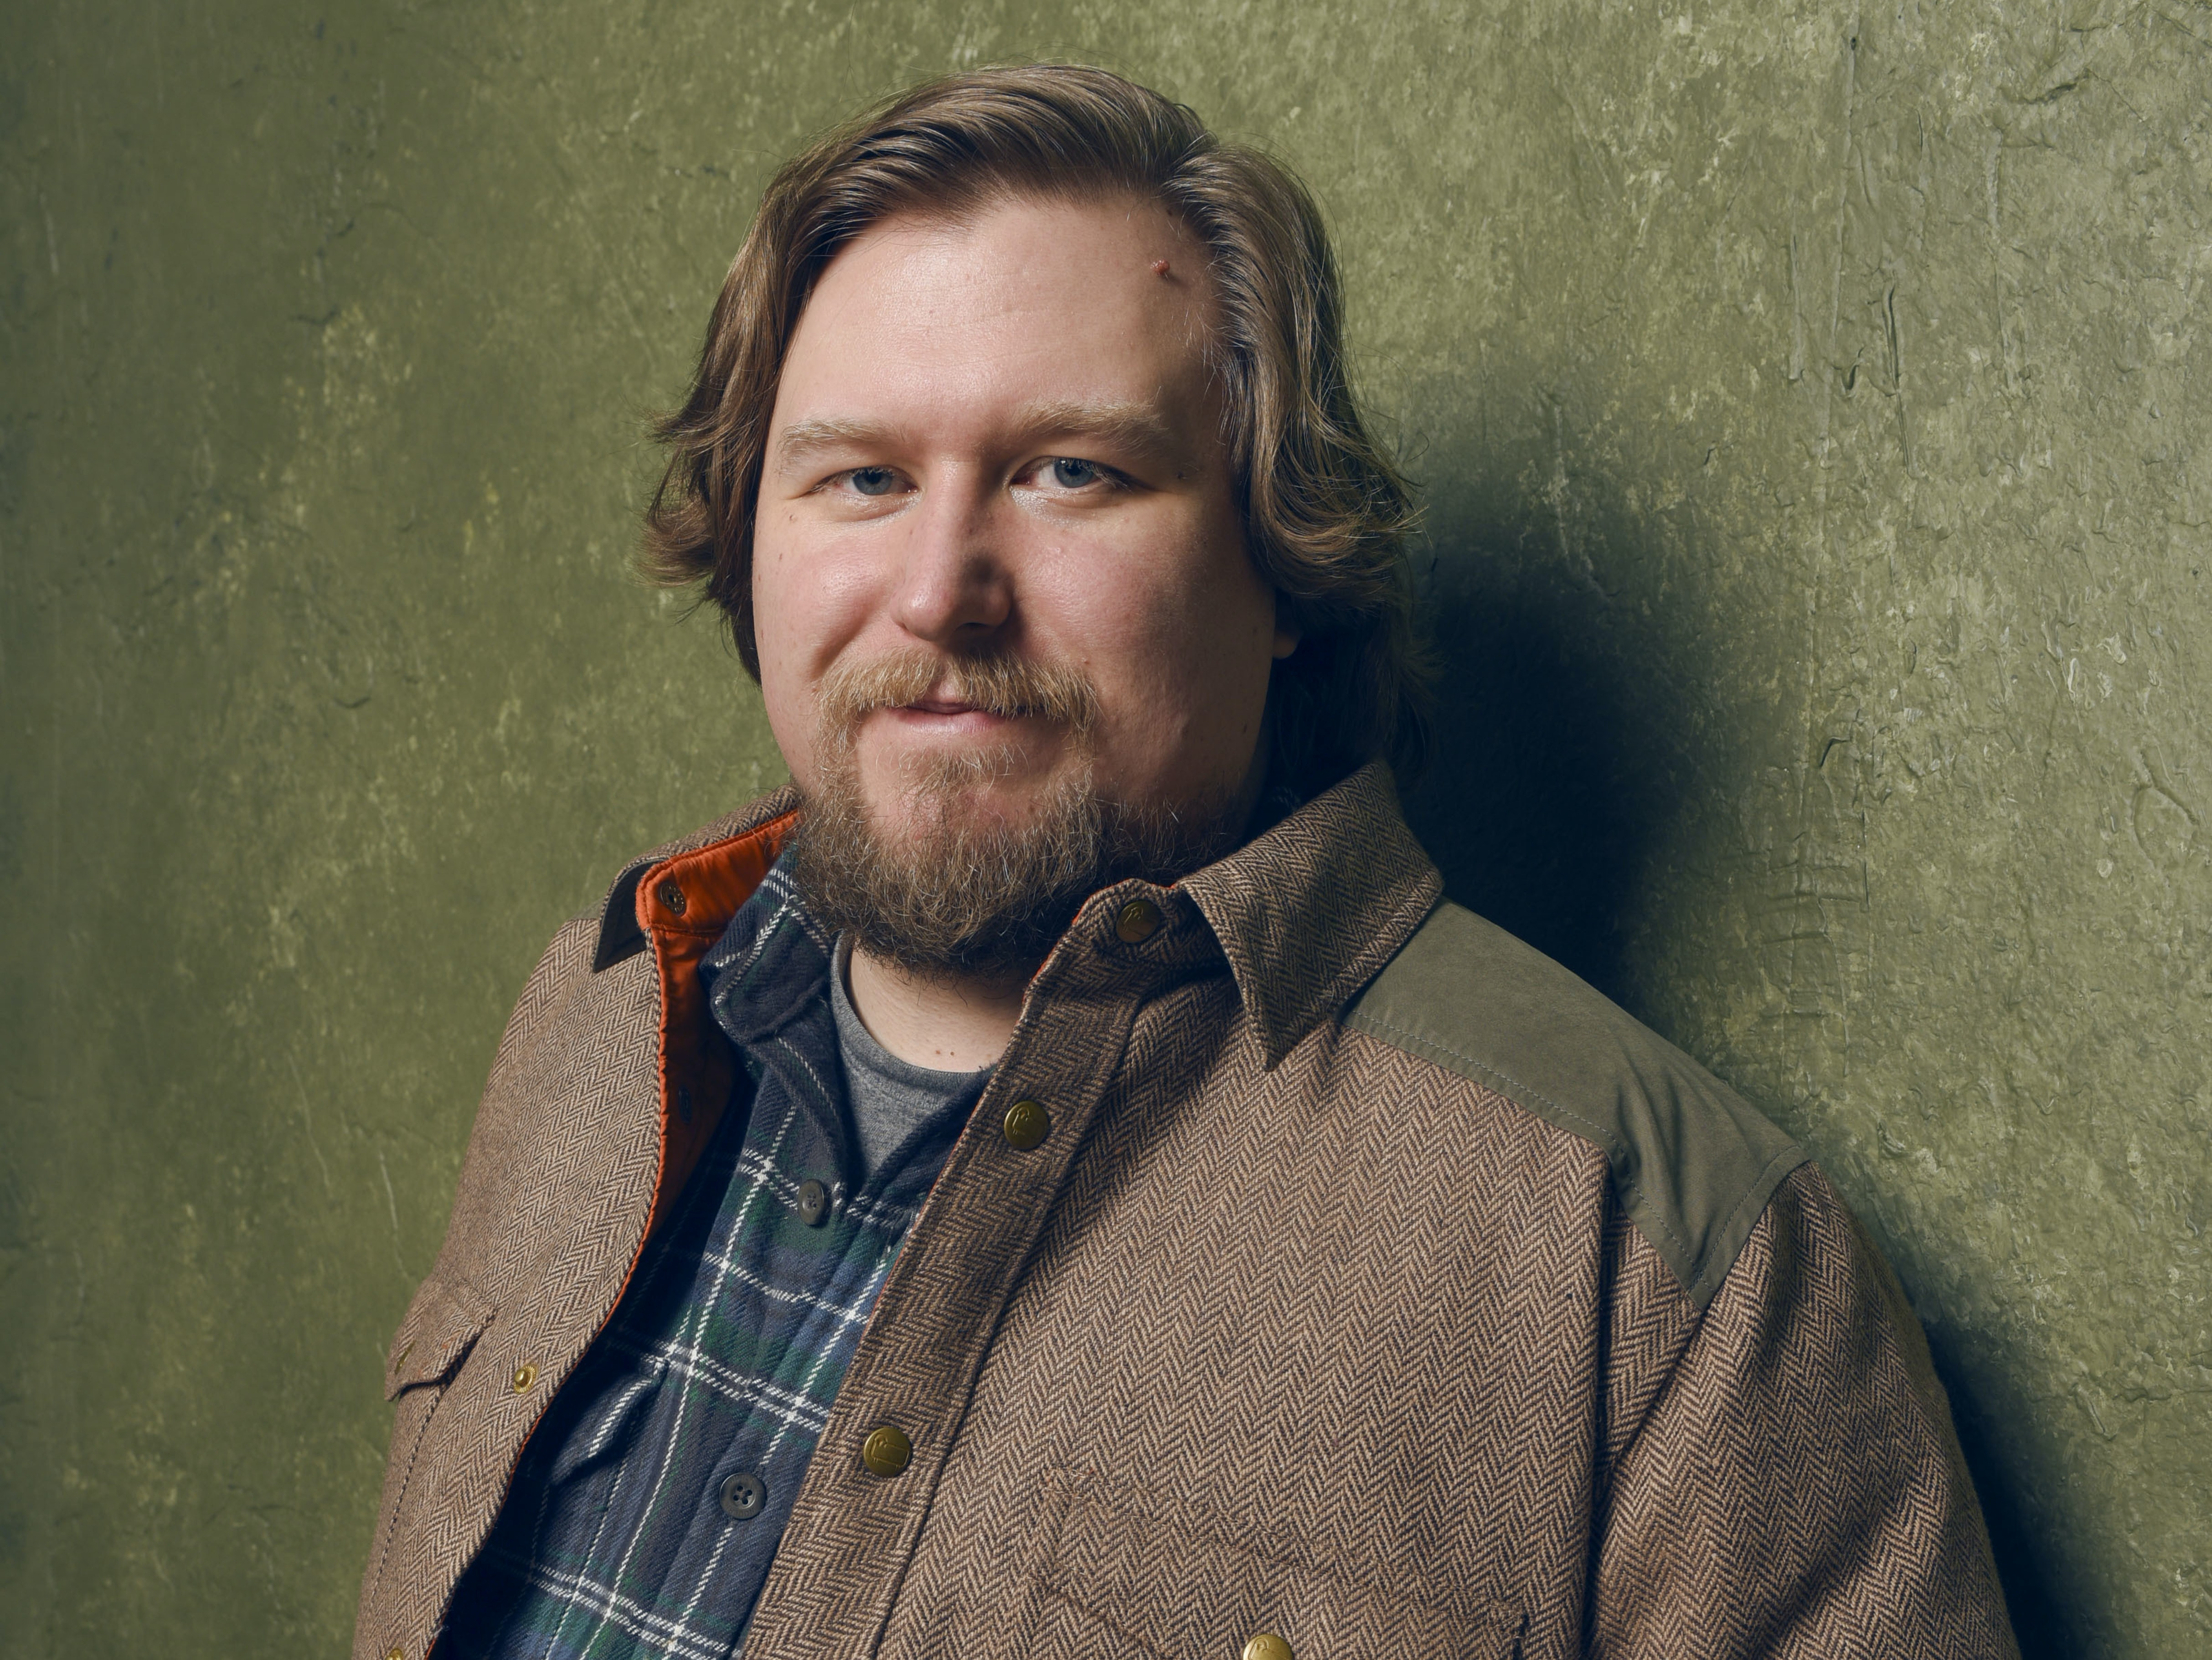 PARK CITY, UT - JANUARY 26:  Actor Michael Chernus of 'People, Places, Things' poses for a portrait at the Village at the Lift Presented by McDonald's McCafe during the 2015 Sundance Film Festival on January 26, 2015 in Park City, Utah.  (Photo by Larry Busacca/Getty Images)